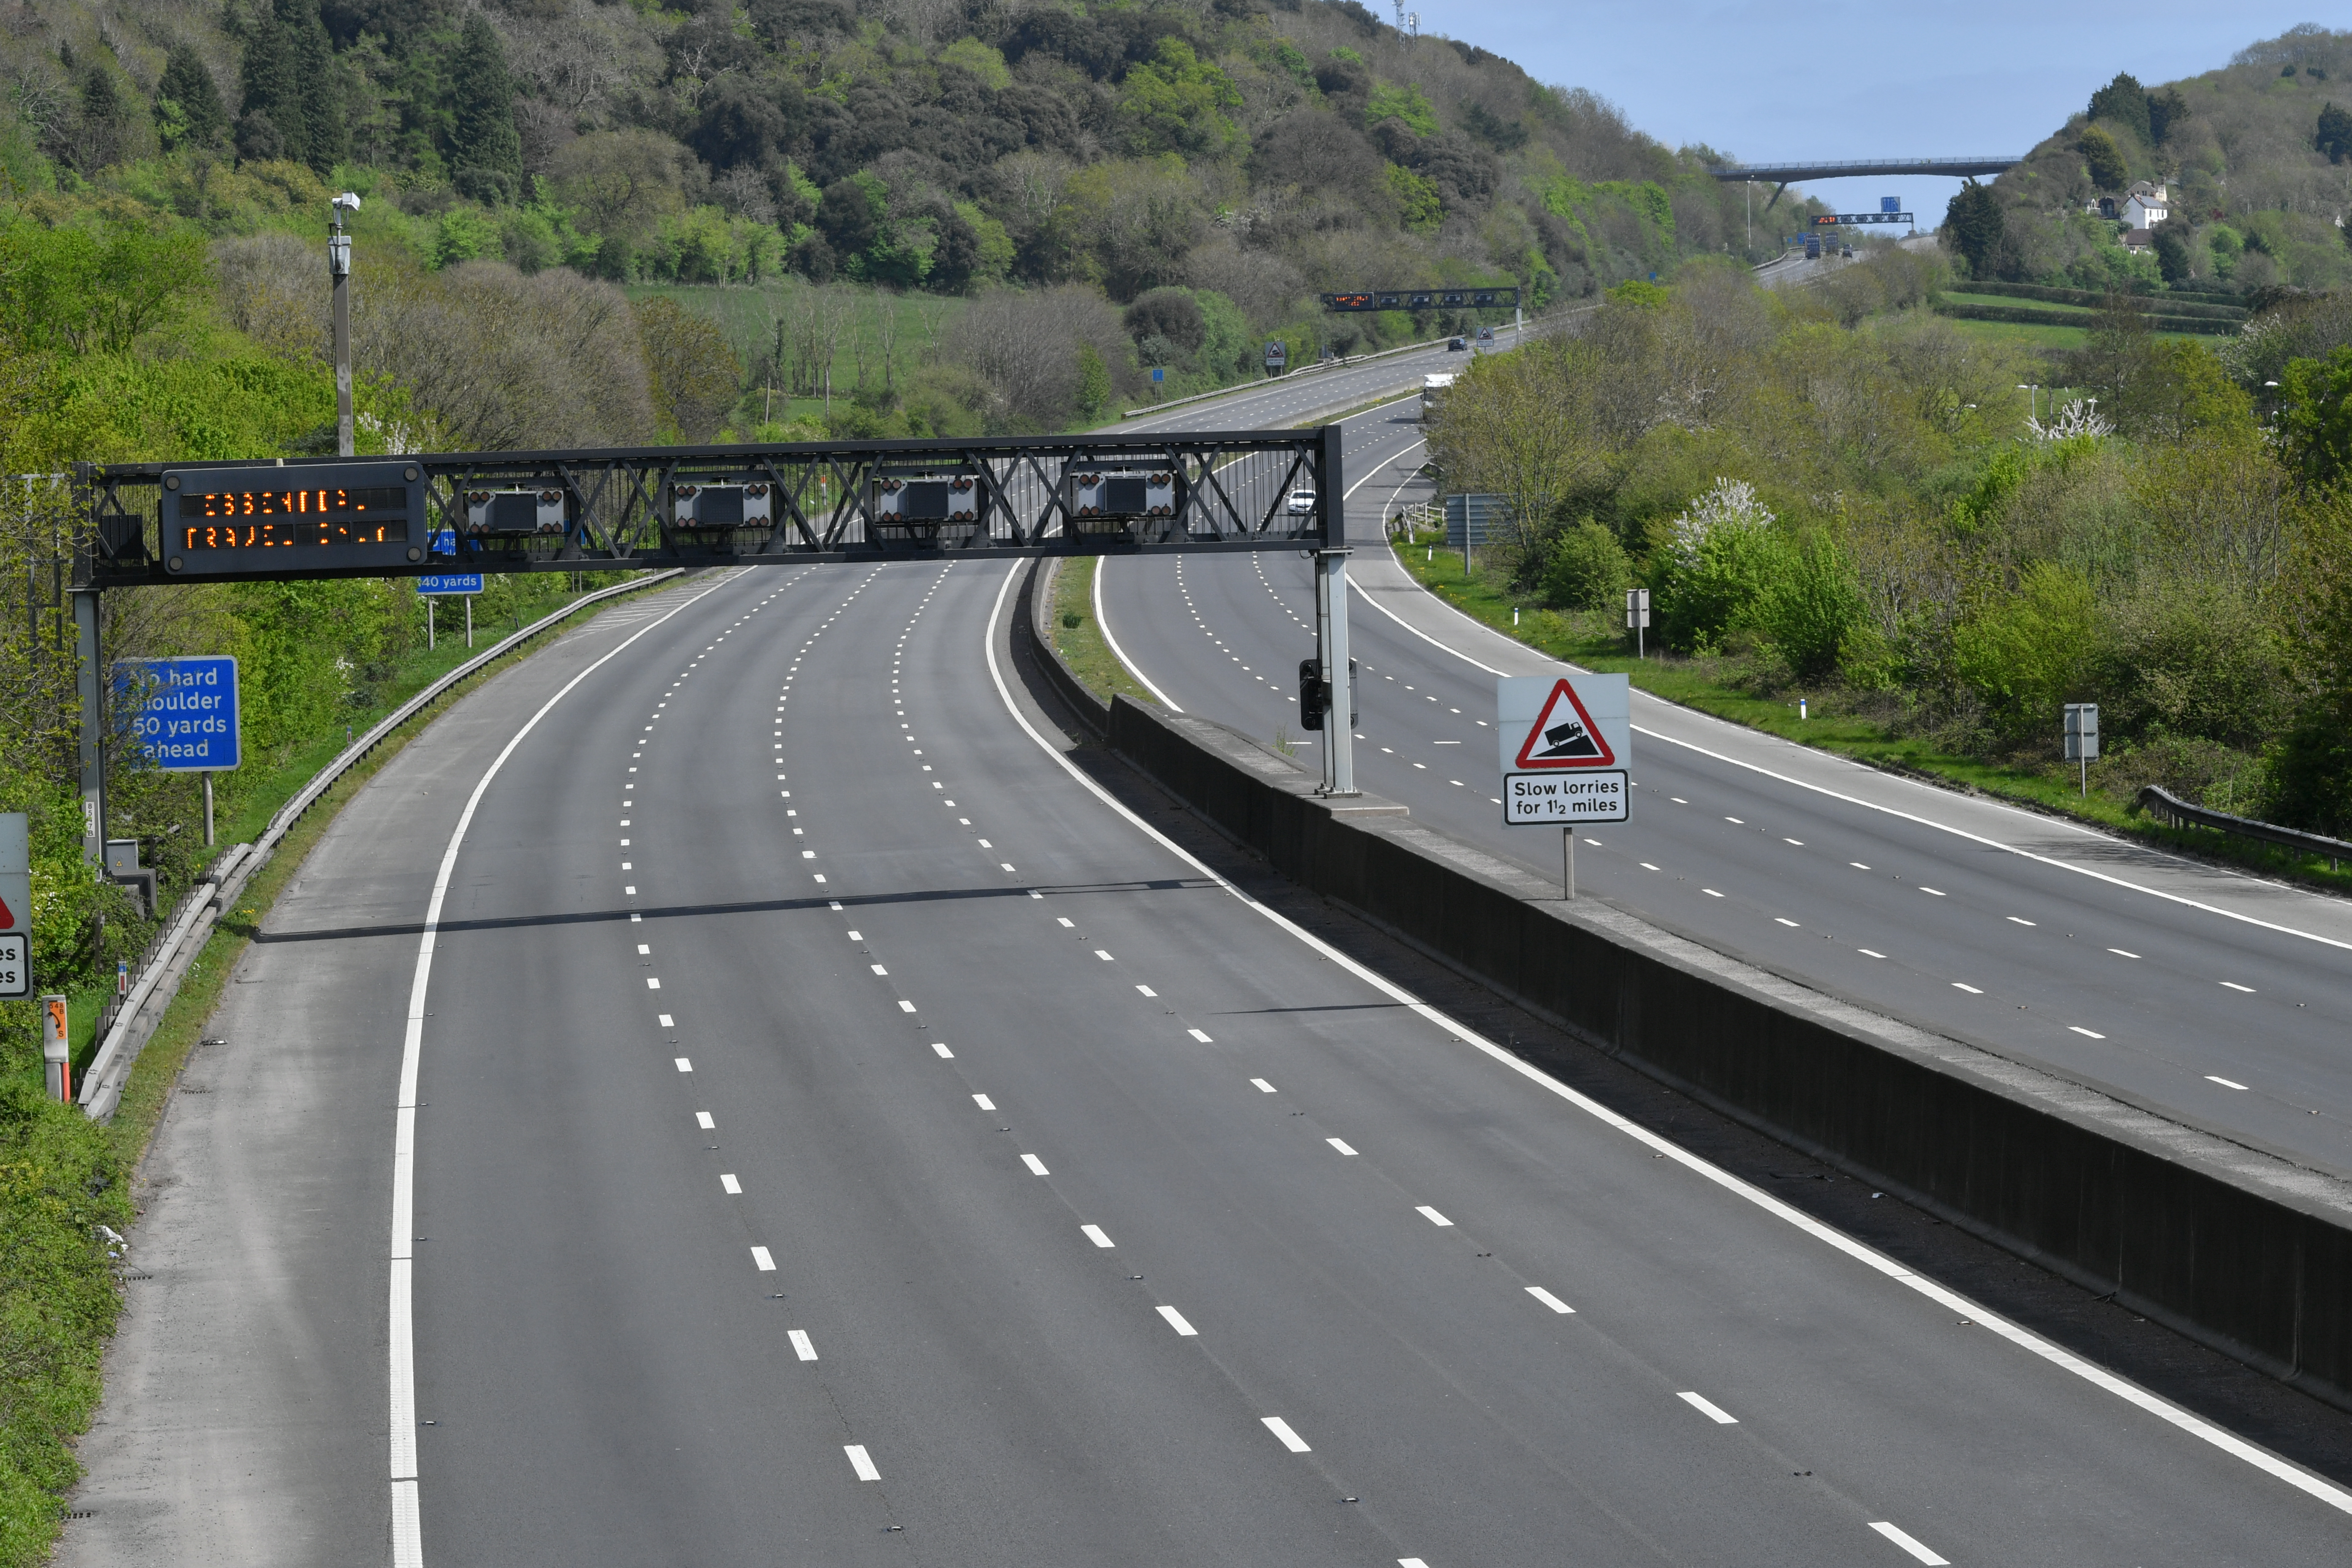 A deserted M5 motorway near Clevedon on Easter Bank Holiday Monday at midday, as the UK continues in lockdown to help curb the spread of the coronavirus.